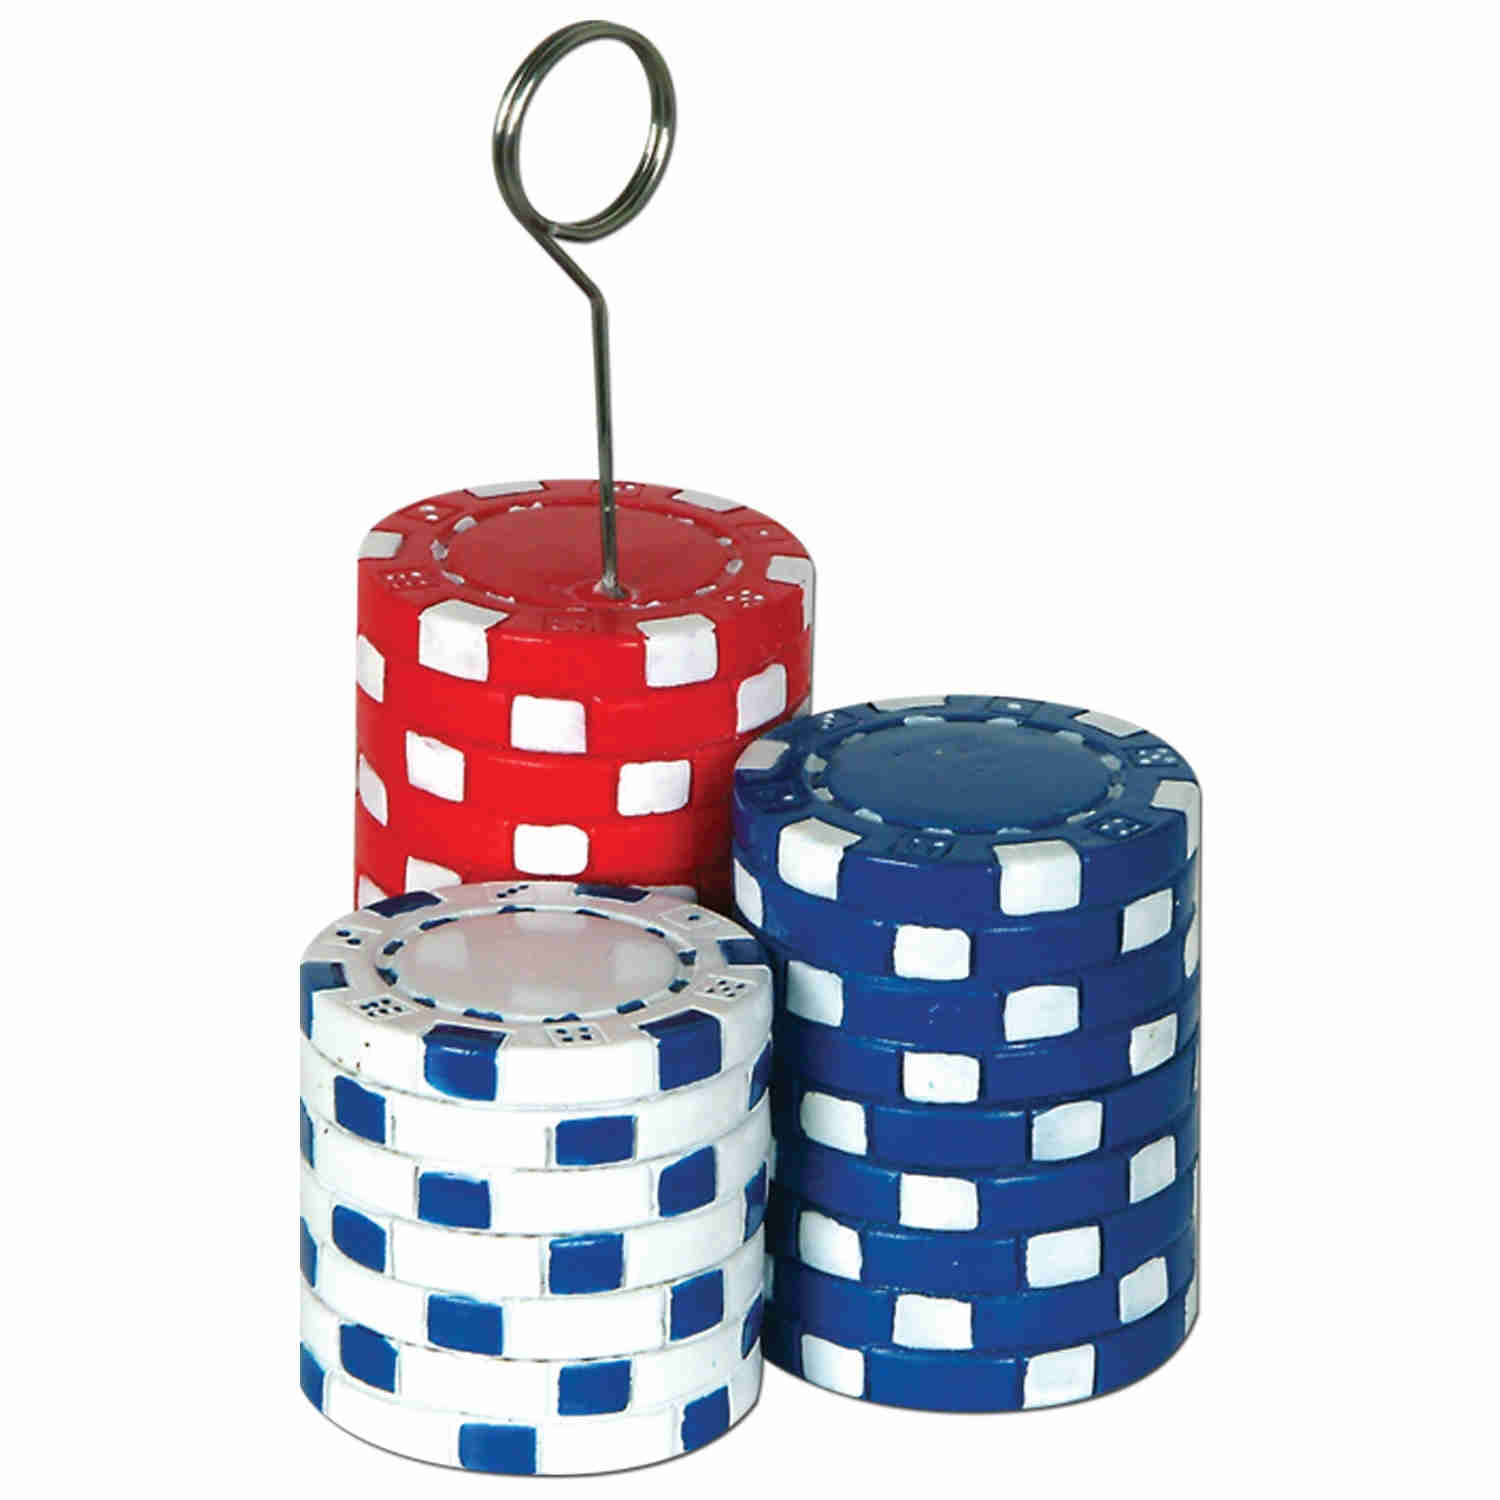 balloon weight in the shape of stacked red white and blue poker chips